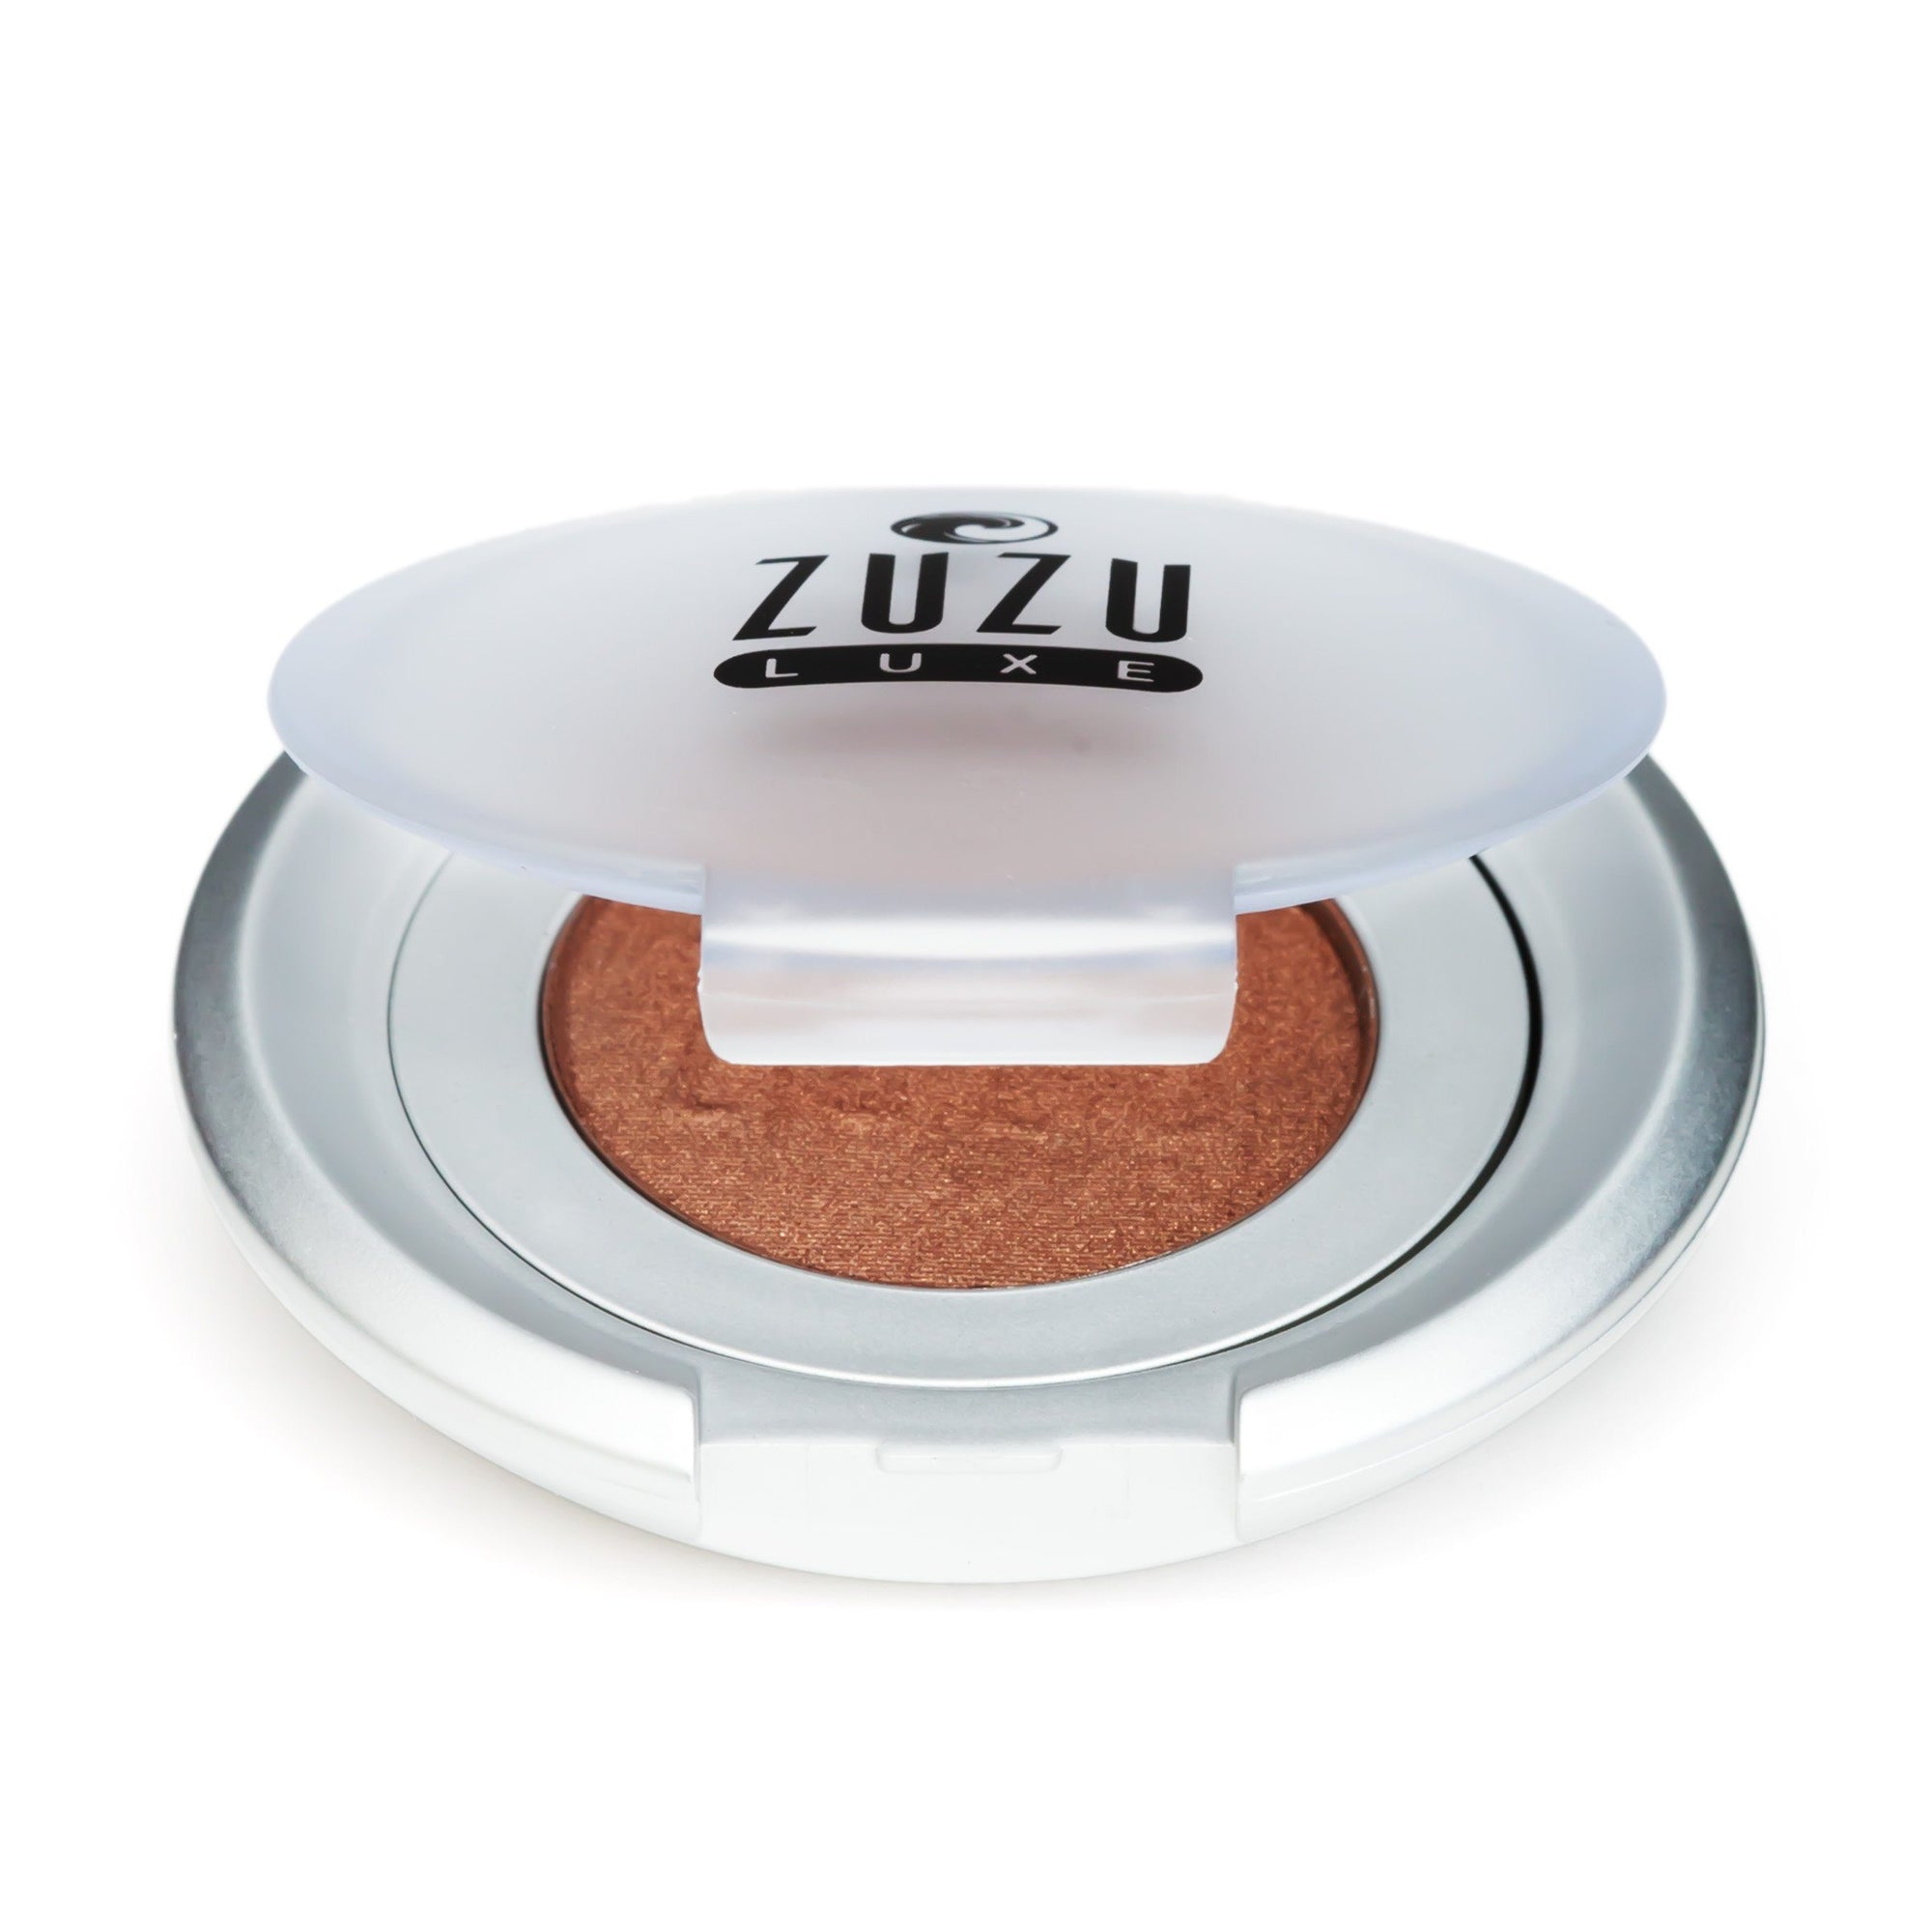 Beauty & Skin Care - Zuzu Luxe - Vegan Eyeshadow, Sahara